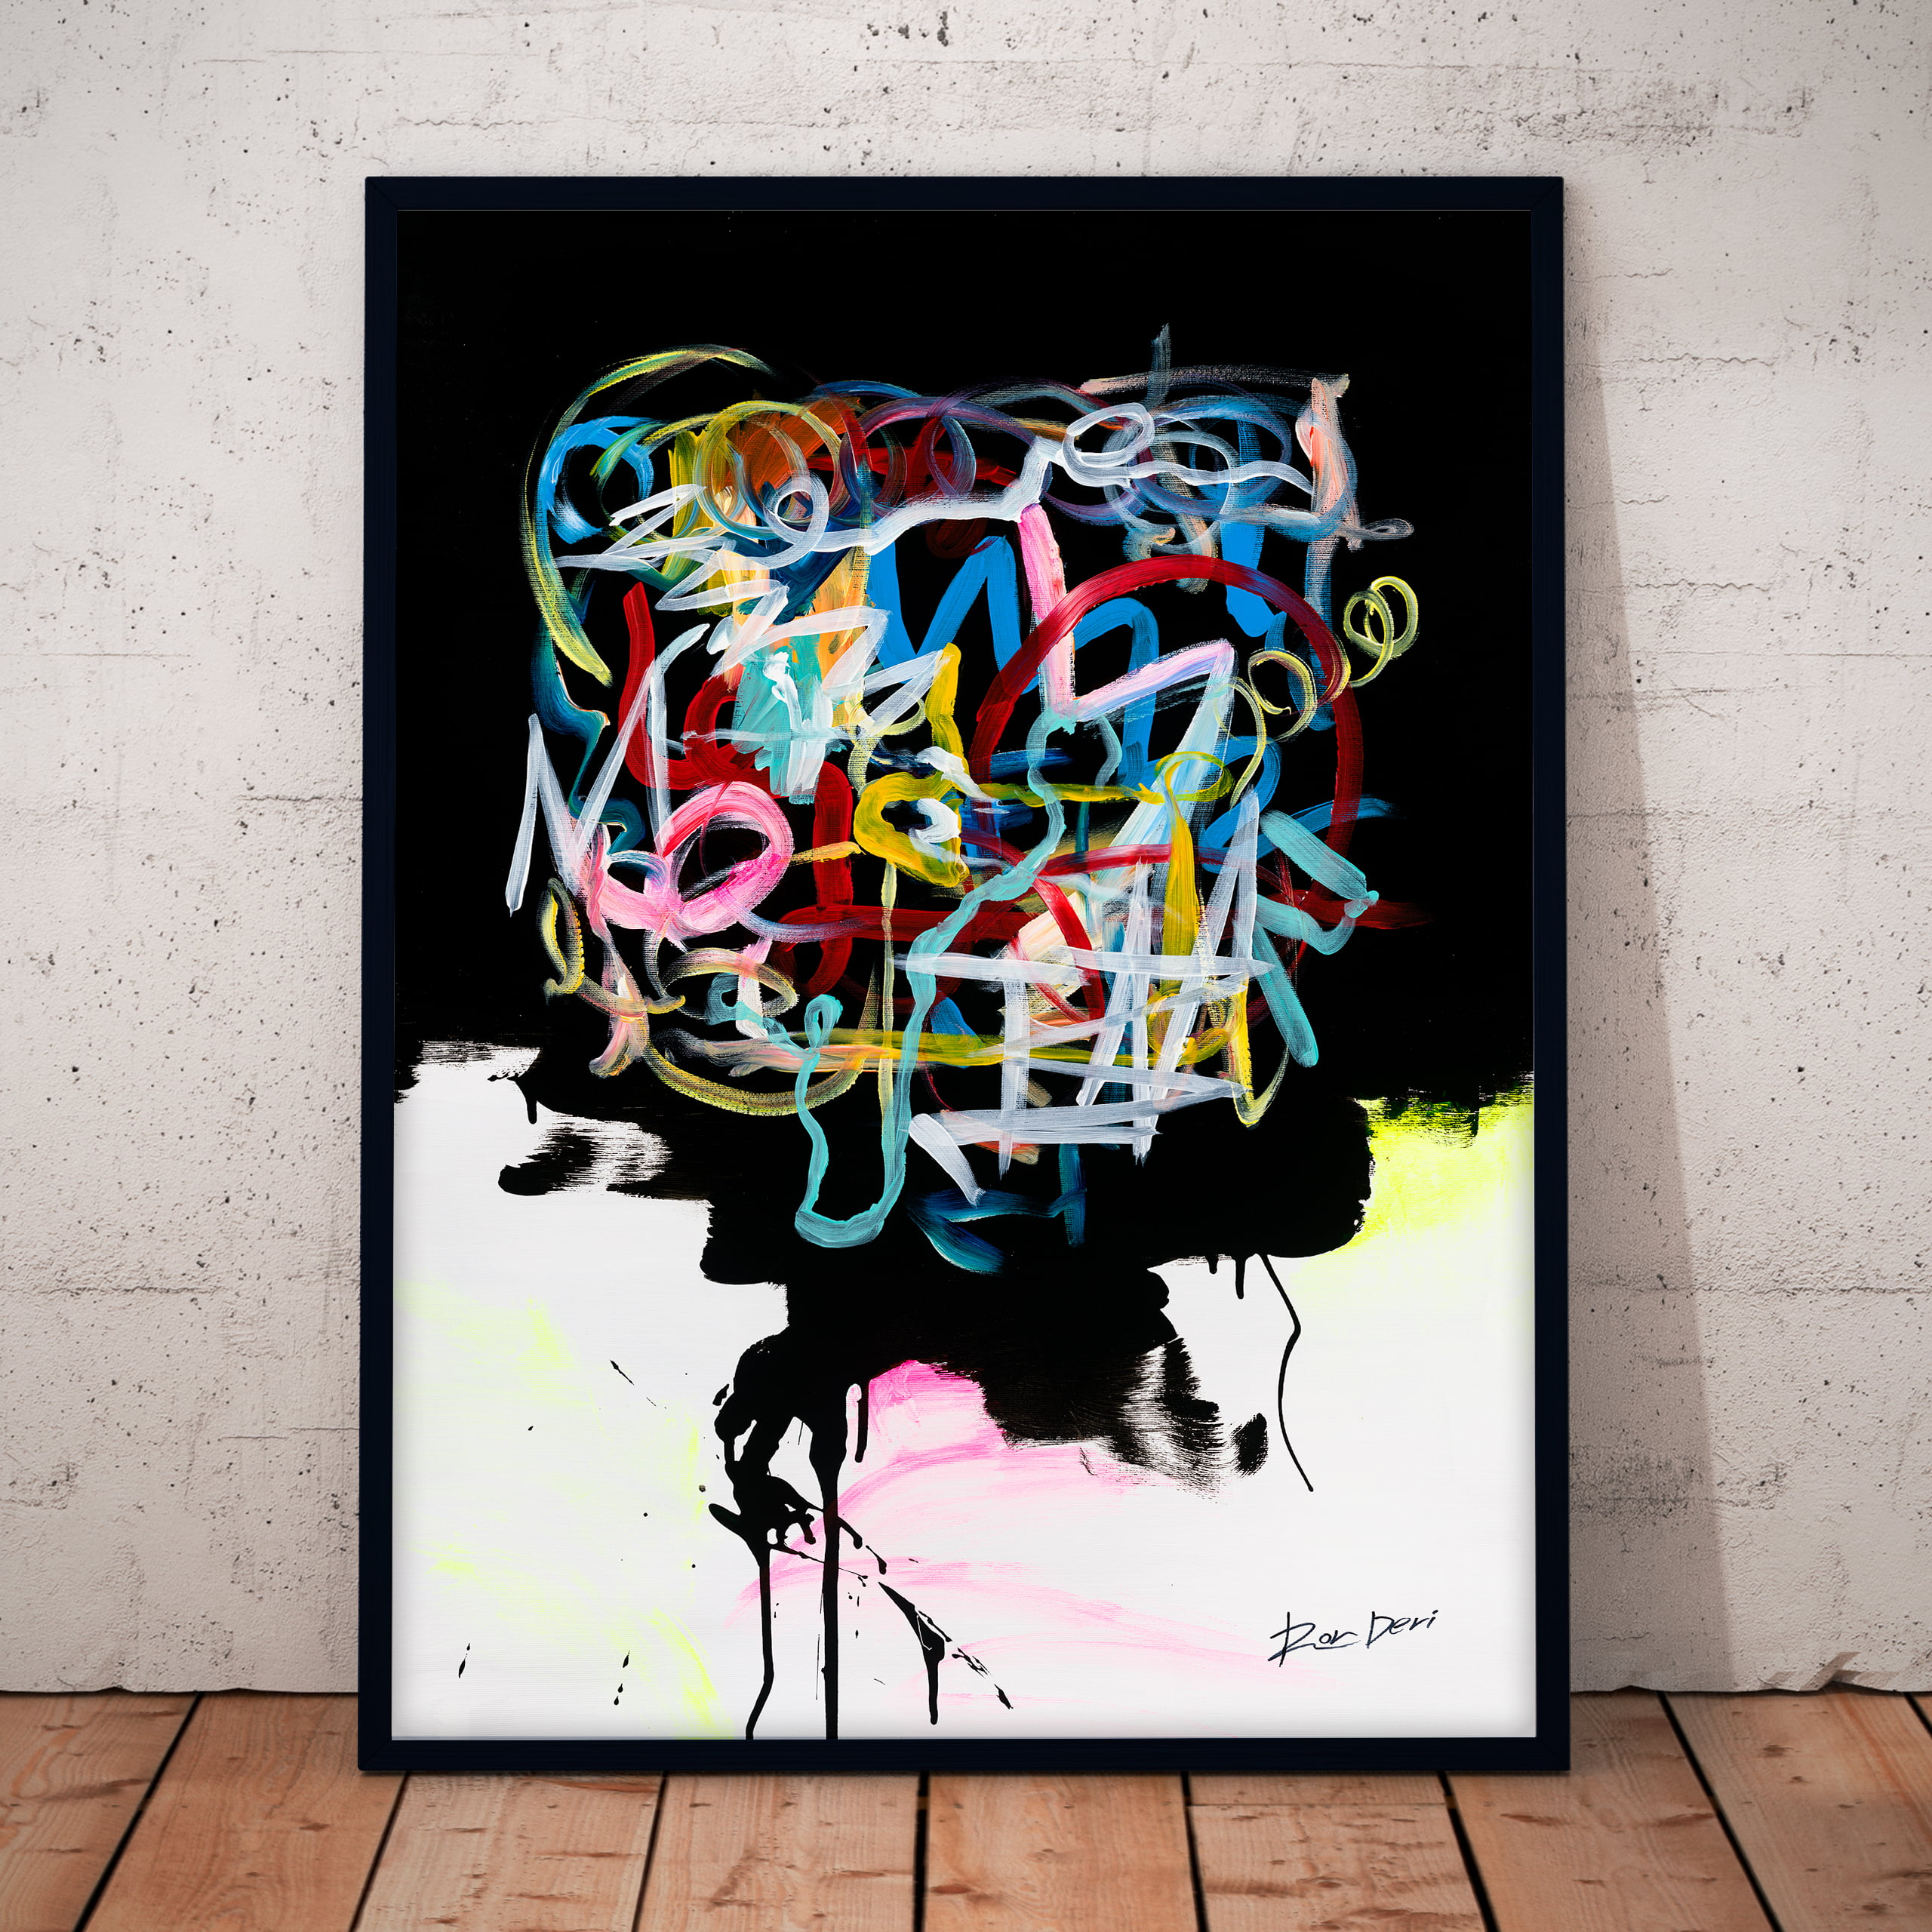 human brain abstract art print by ron deri